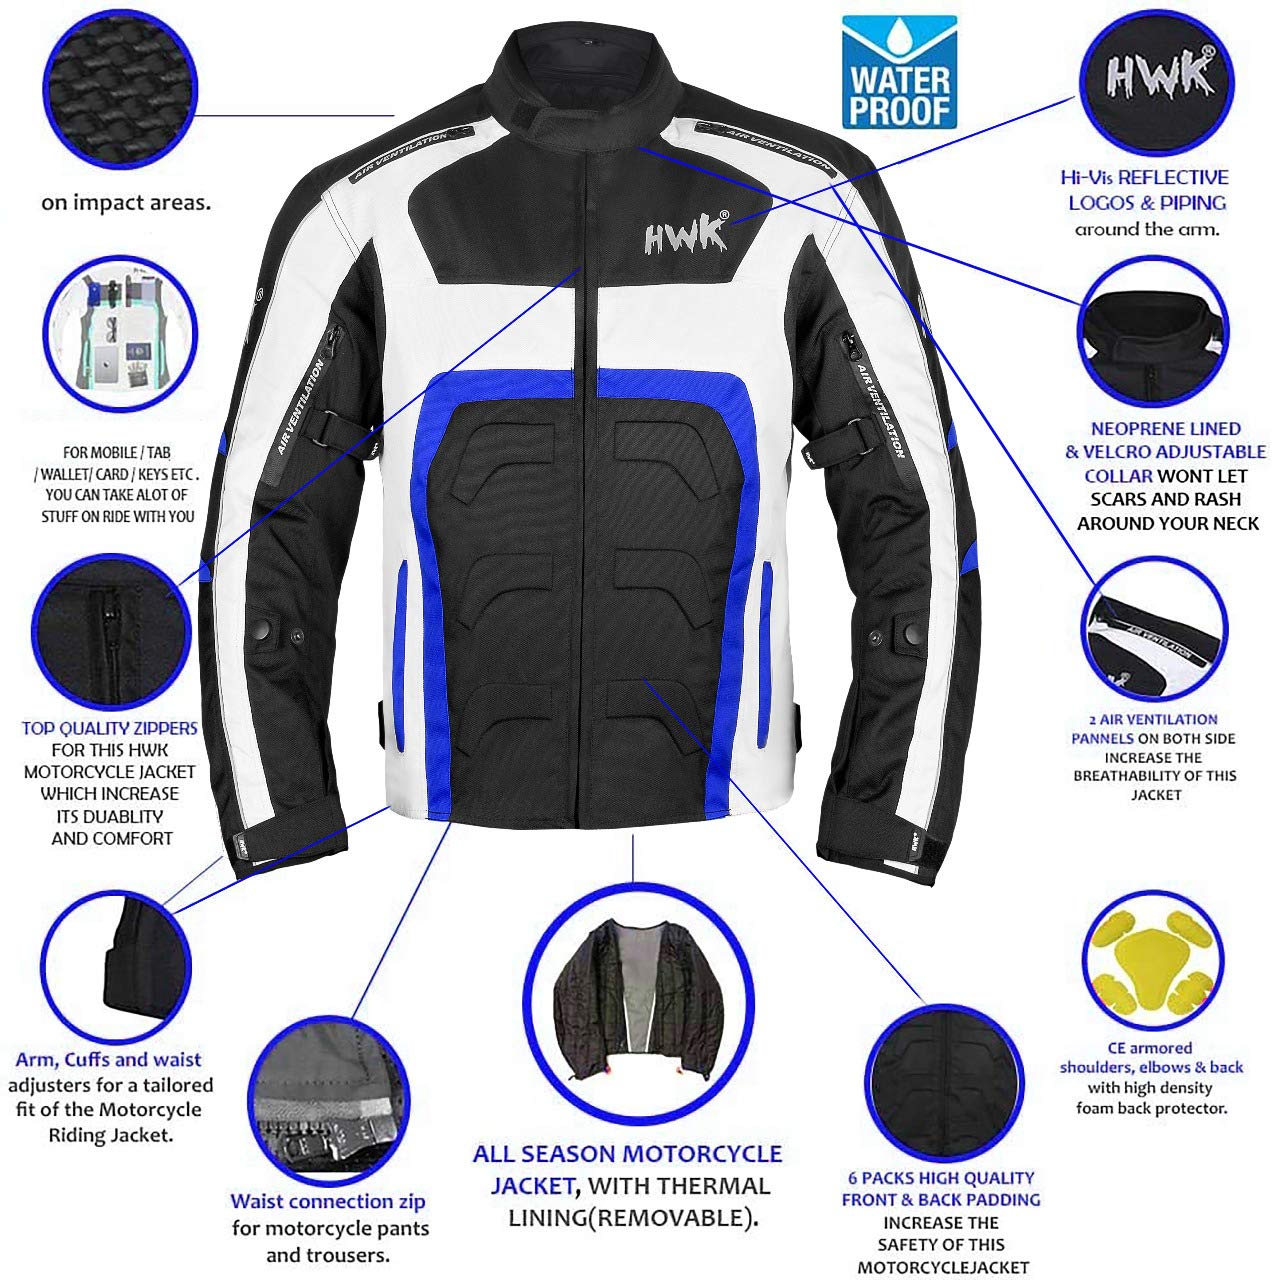 cca7eb71b65 Amazon.com  HWK Textile Motorcycle Jacket Motorbike Jacket Biker Riding  Jacket Cordura Waterproof CE Armoured Breathable Reissa Membrane -  Removable Thermal ...